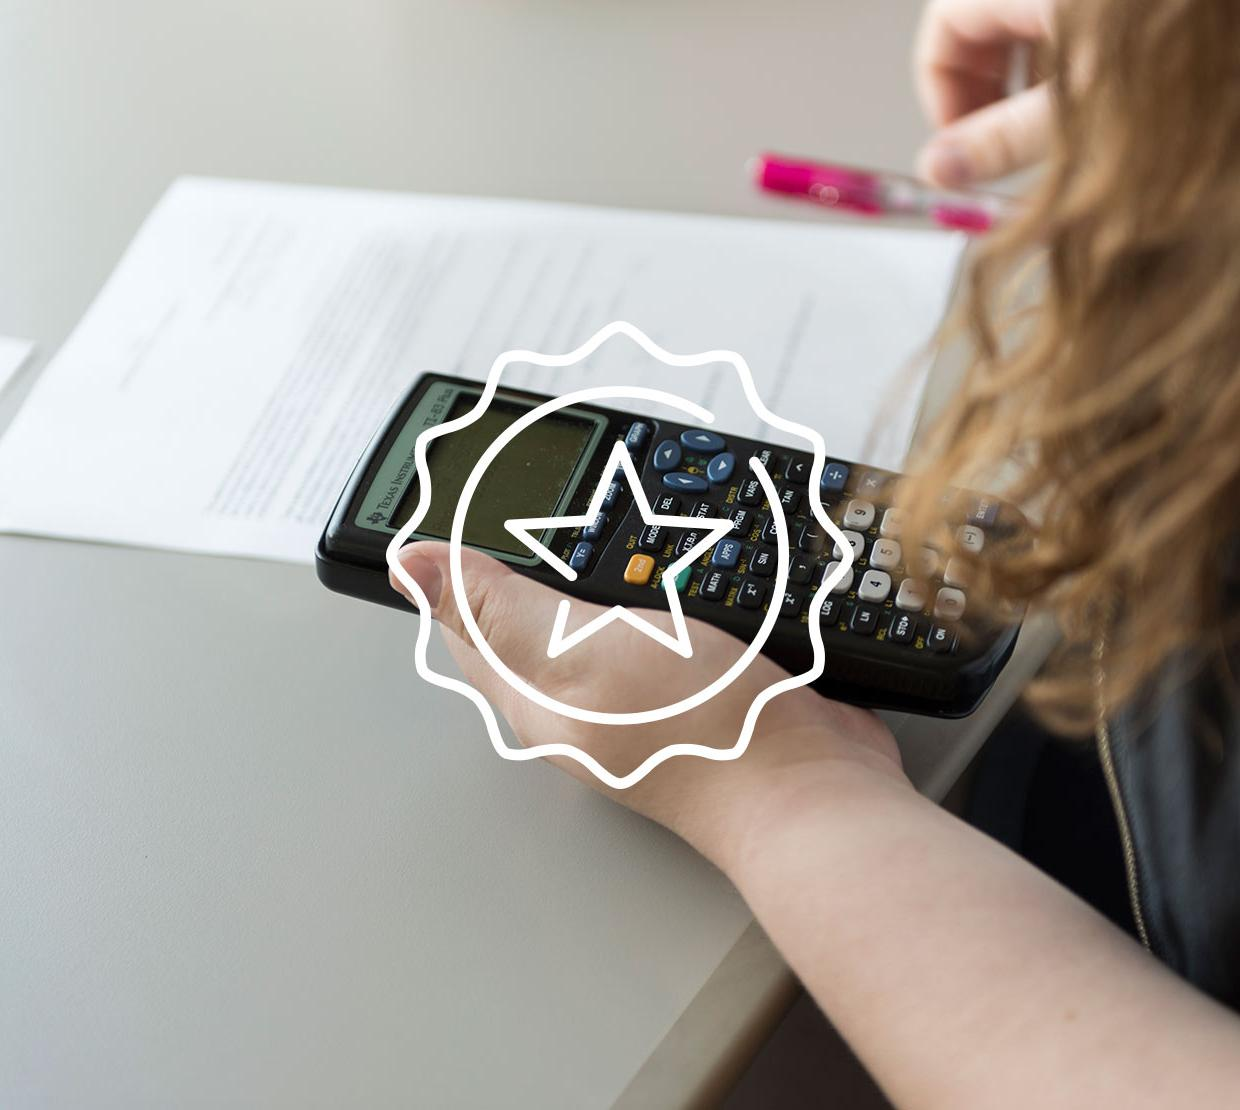 Star icon above female working on homework with calculator